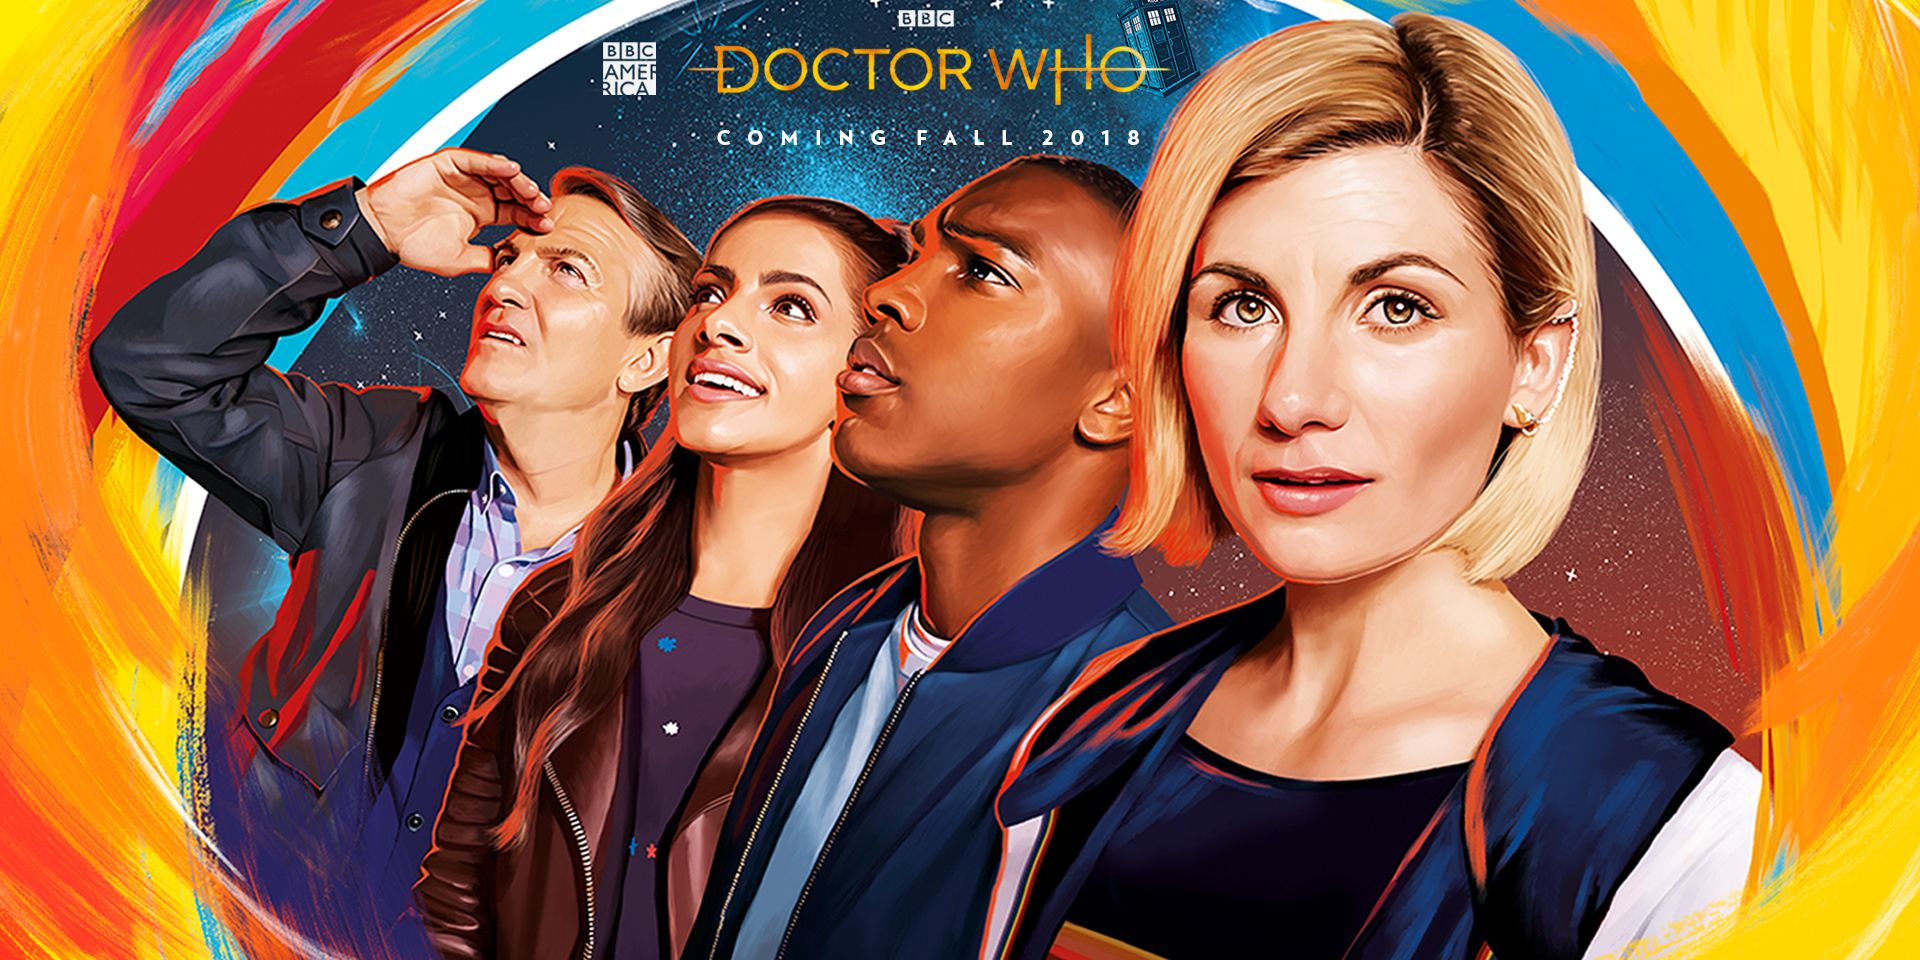 Jodie Whittaker Doctor Who Wallpaper: Doctor Who Season 11 Premiere Sneak Peek